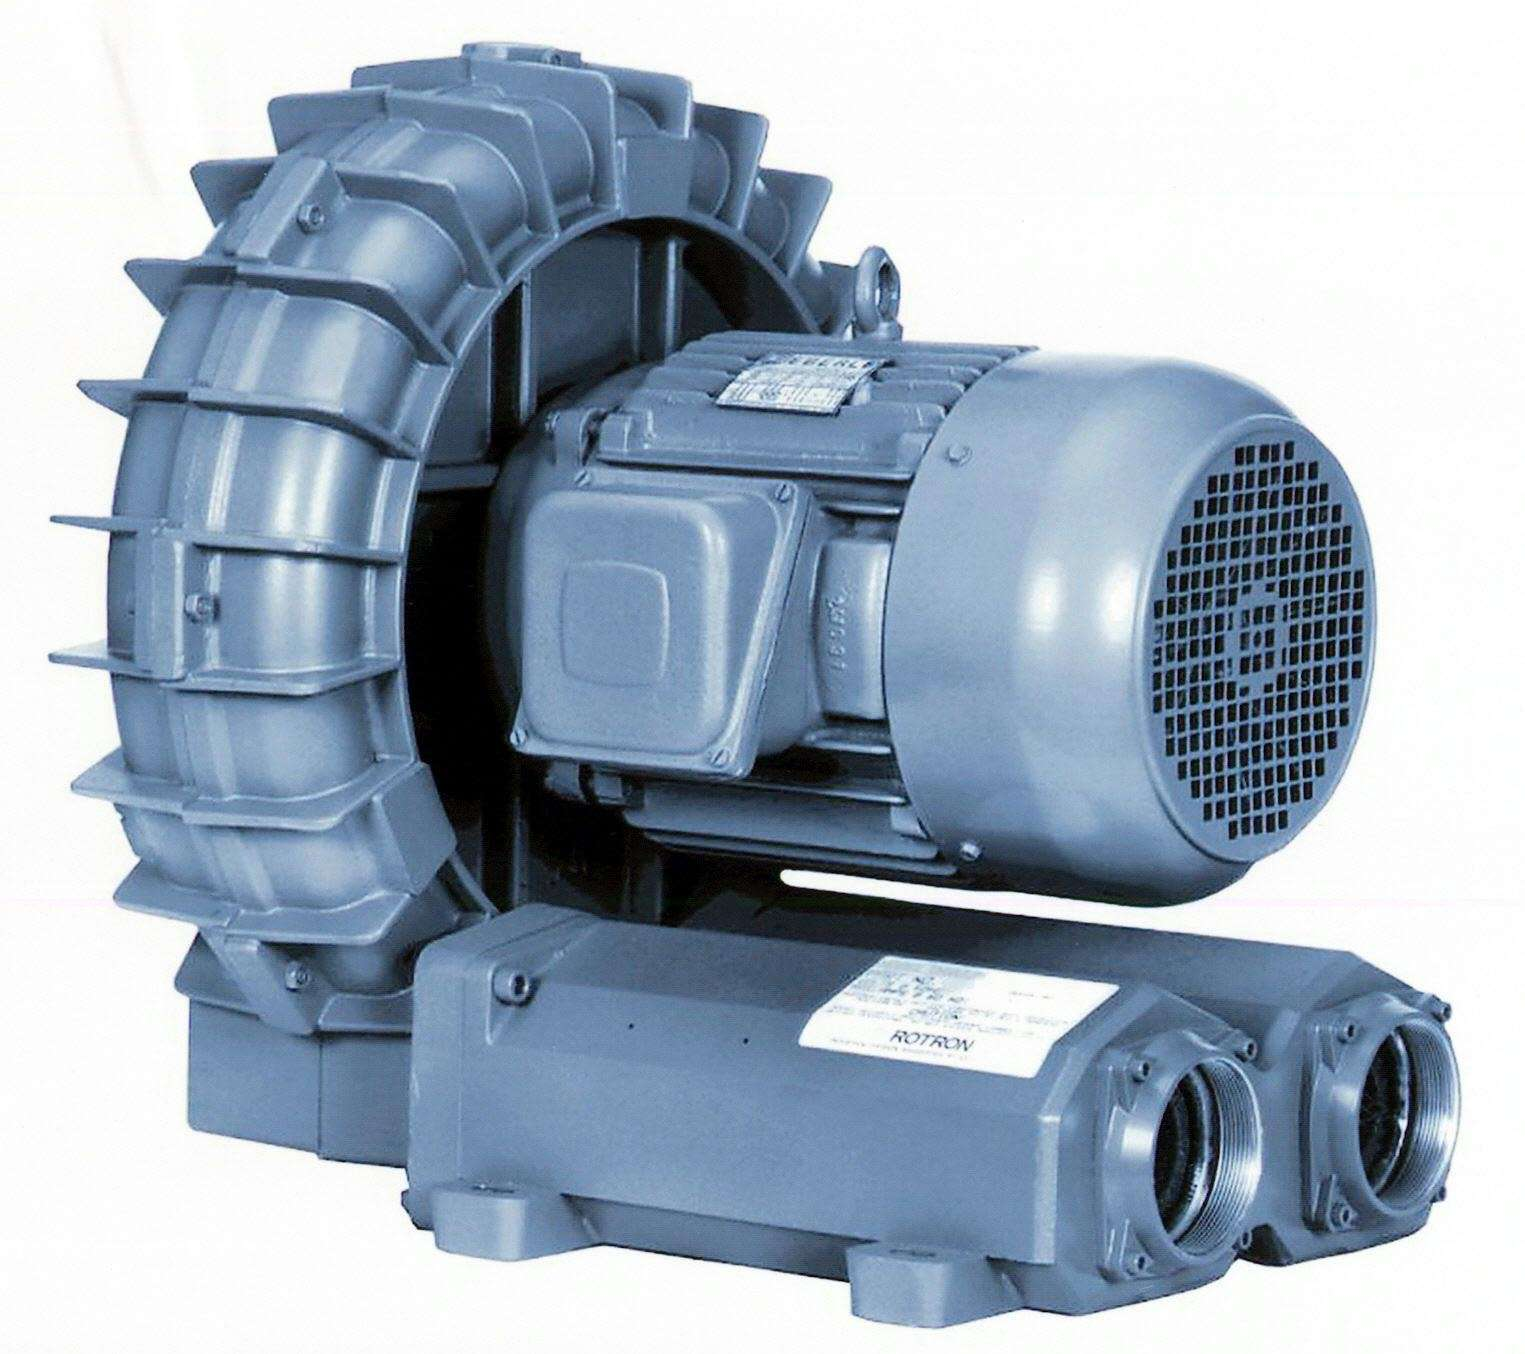 Industrial Fans And Blowers : Ametek rotron regenerative blowers feature chem tough tm